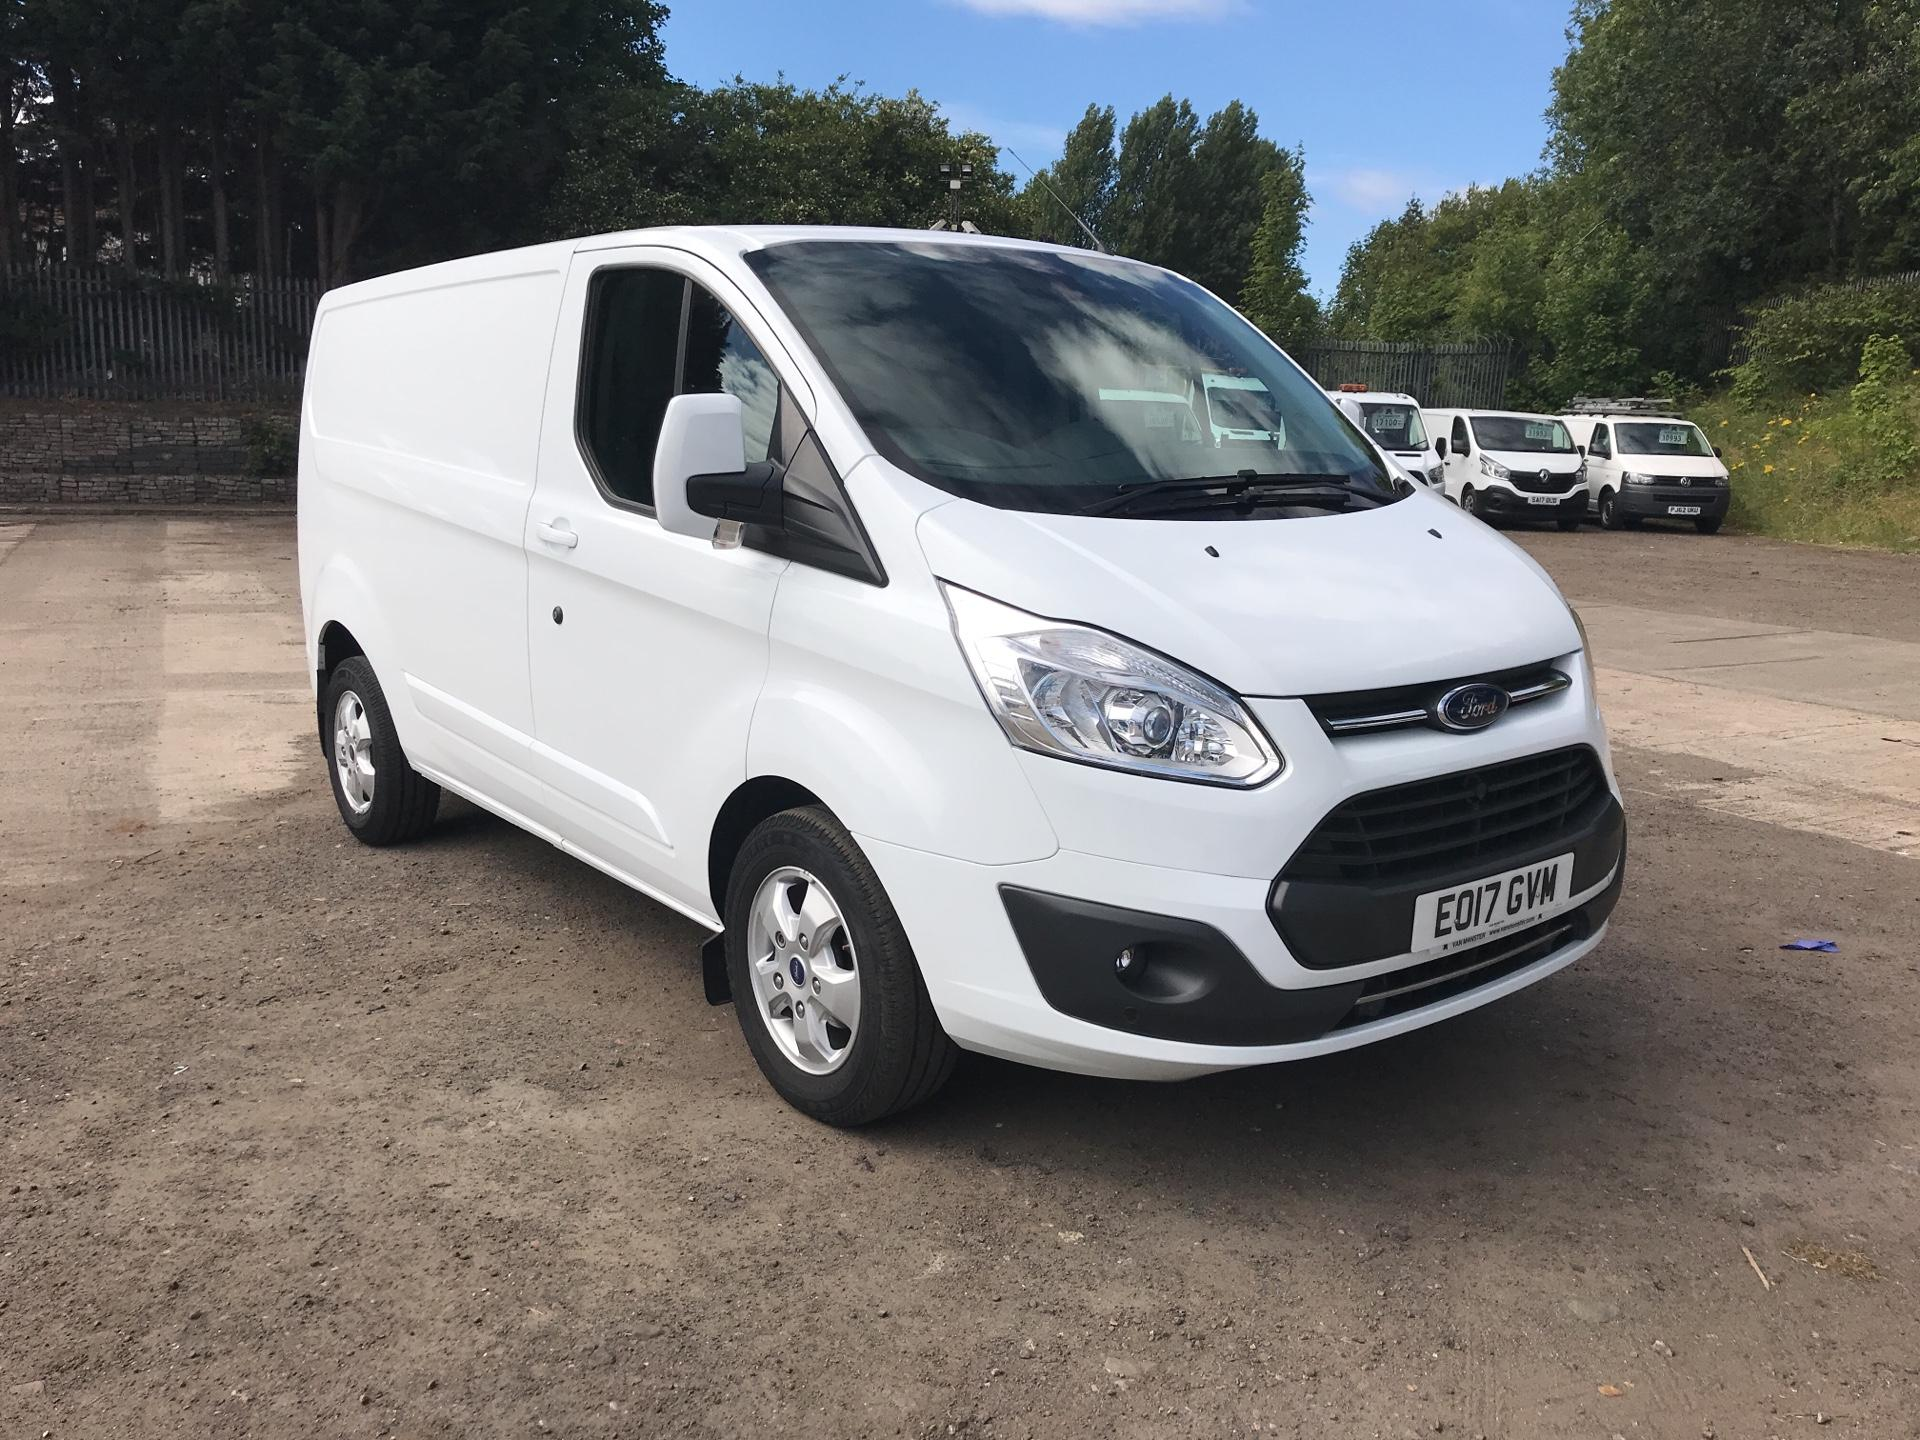 2017 Ford Transit Custom 270 L1 DIESEL FWD 2.0 TDCI 130PS LOW ROOF LIMITED EURO 6 (EO17GVM)